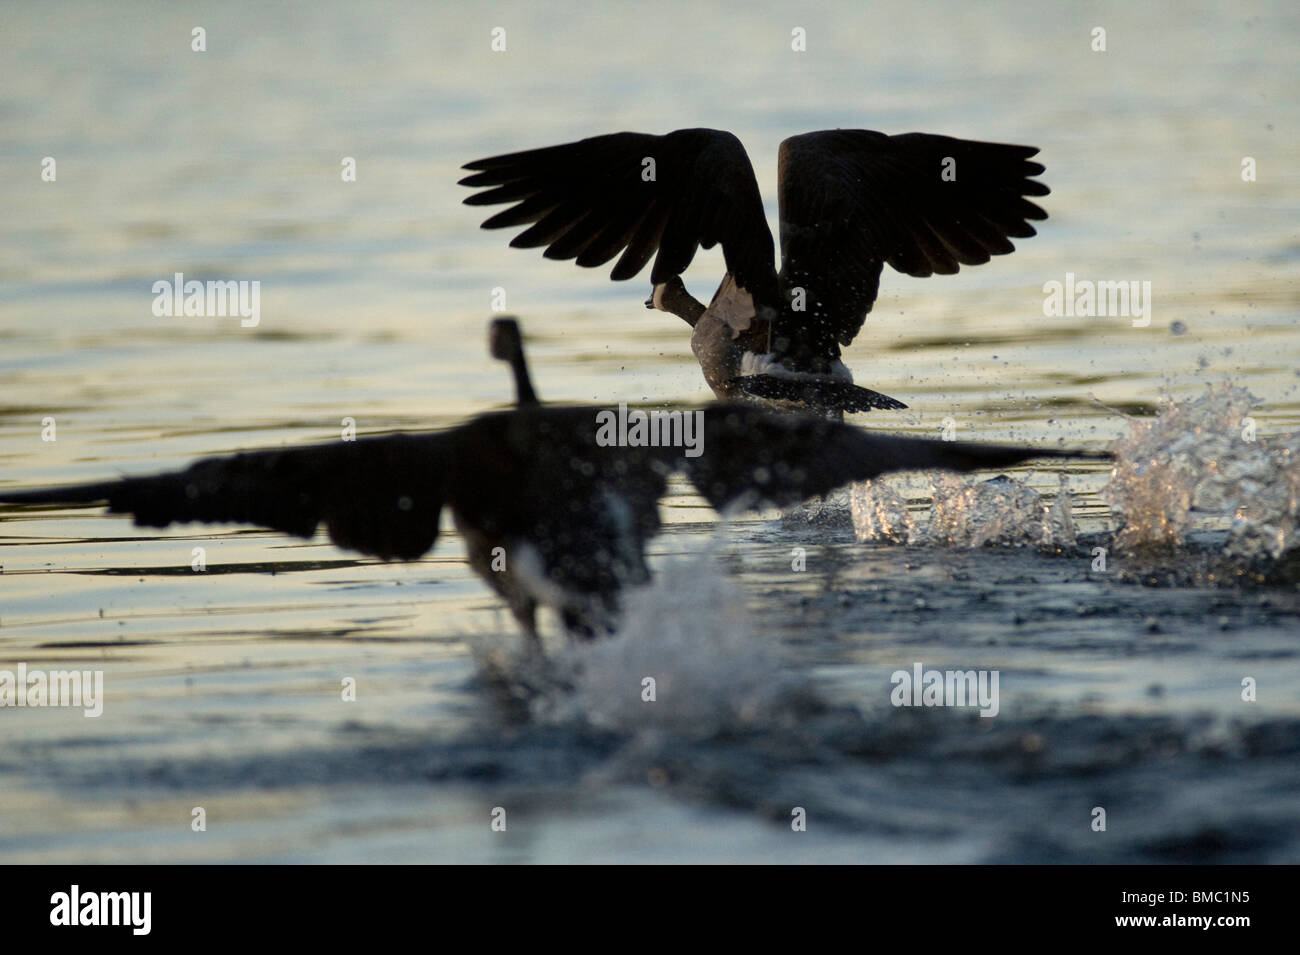 Lake Of The Woods, Ontario, Canada; Canada Geese In Flight - Stock Image